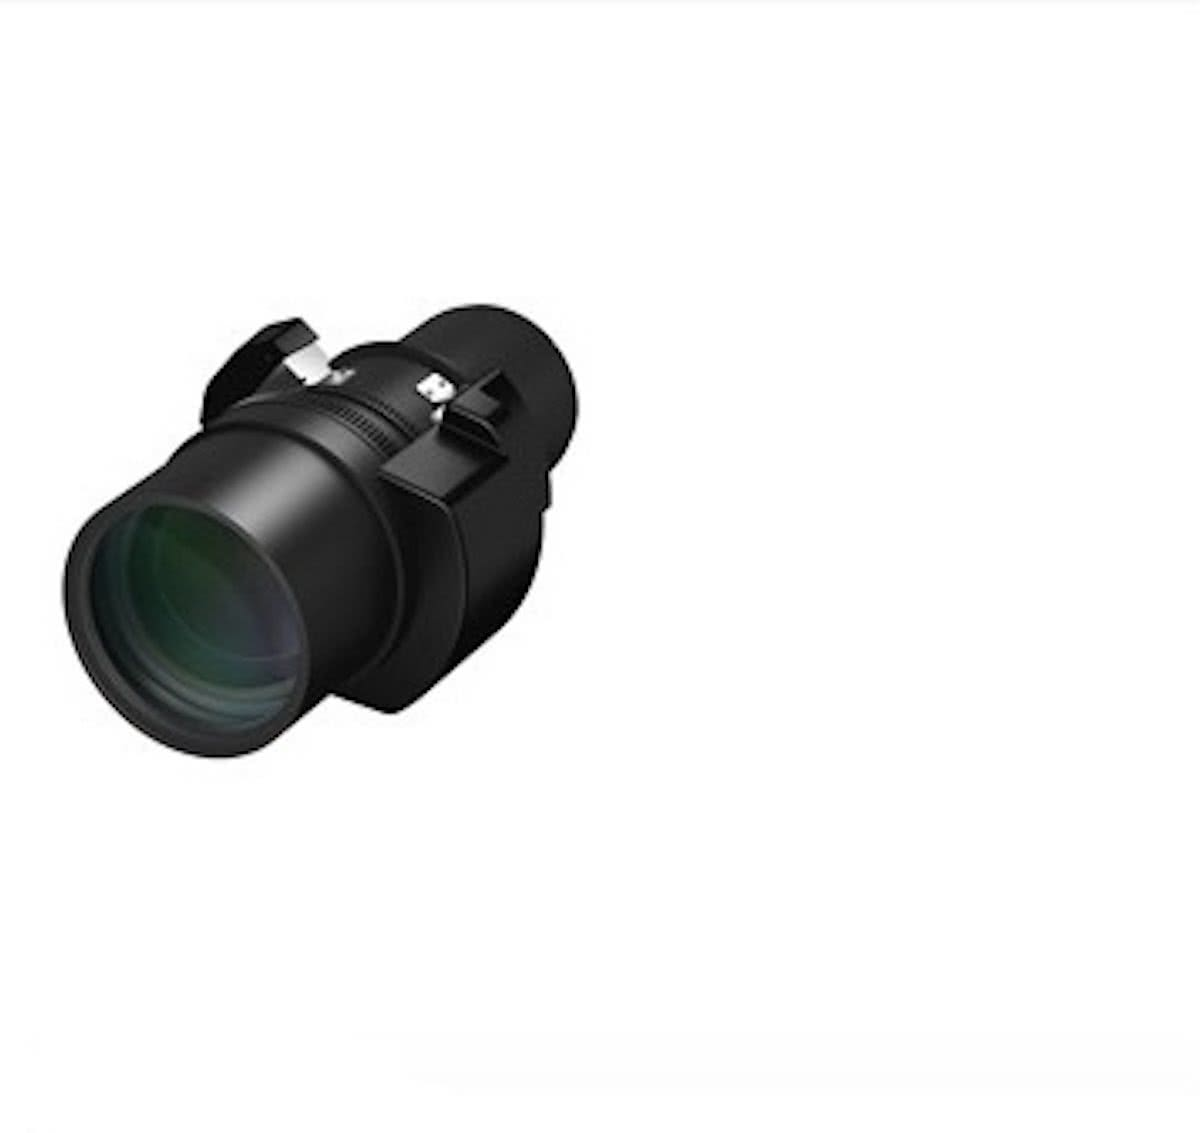 Lens - ELPLM10 - Mid throw 3 - G7000/L1000 series